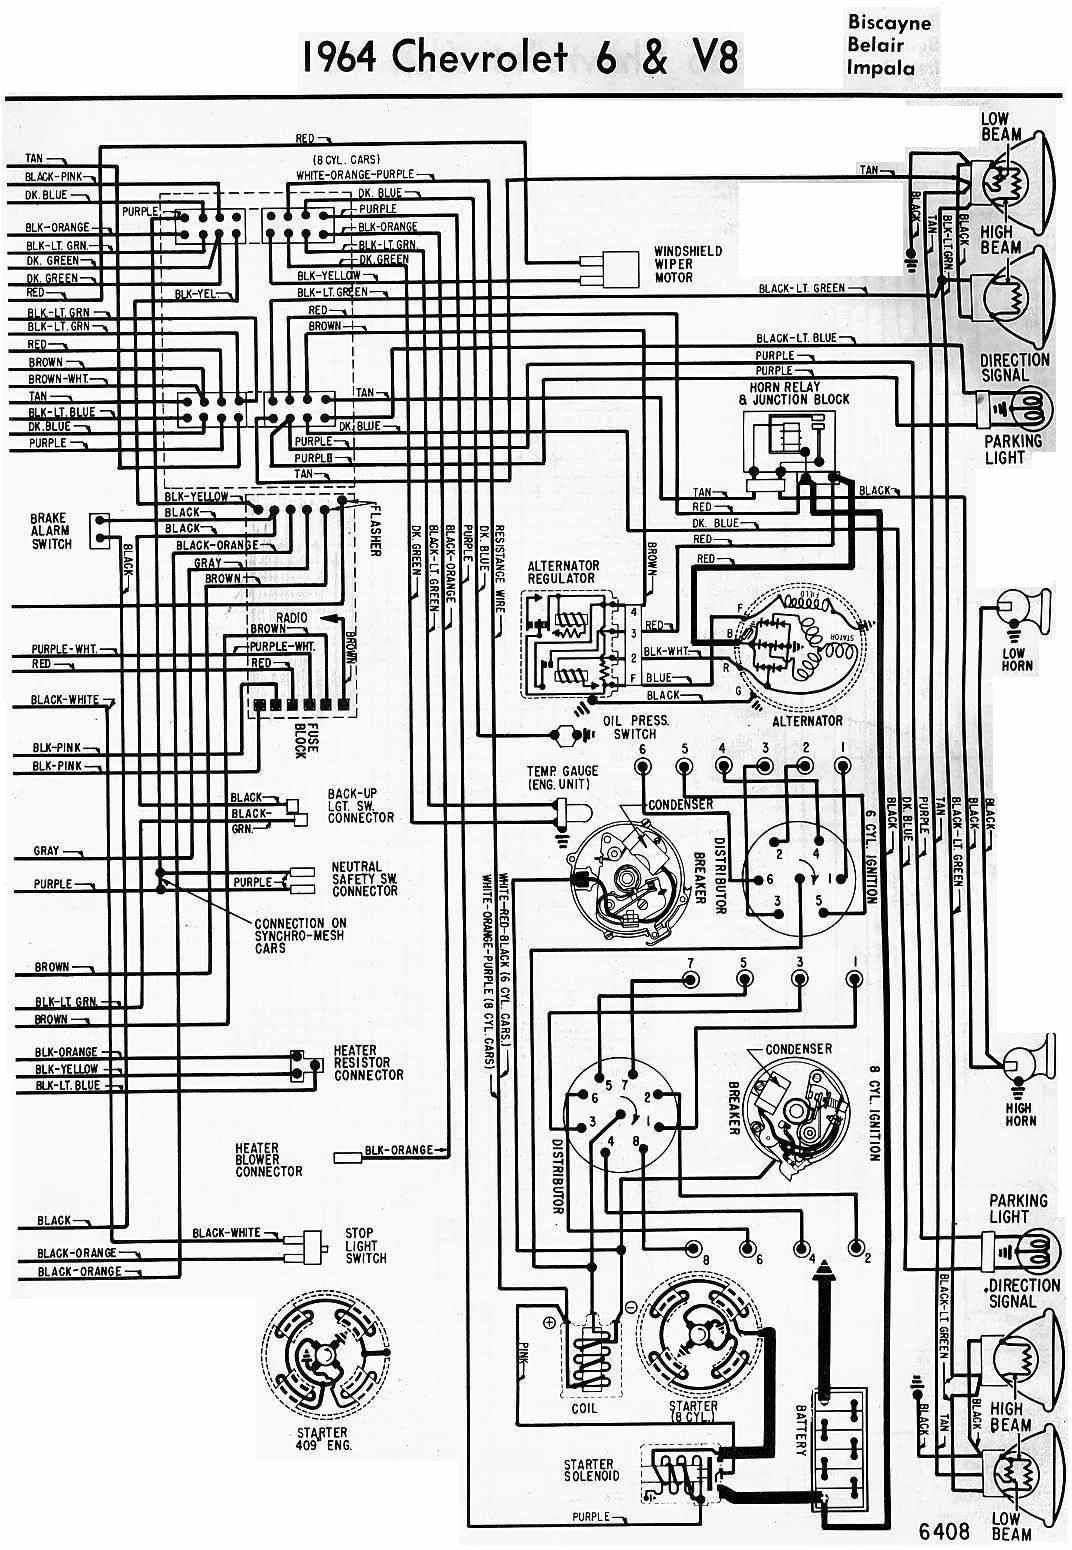 medium resolution of electrical wiring diagram of 1964 chevrolet 6 and v8 all